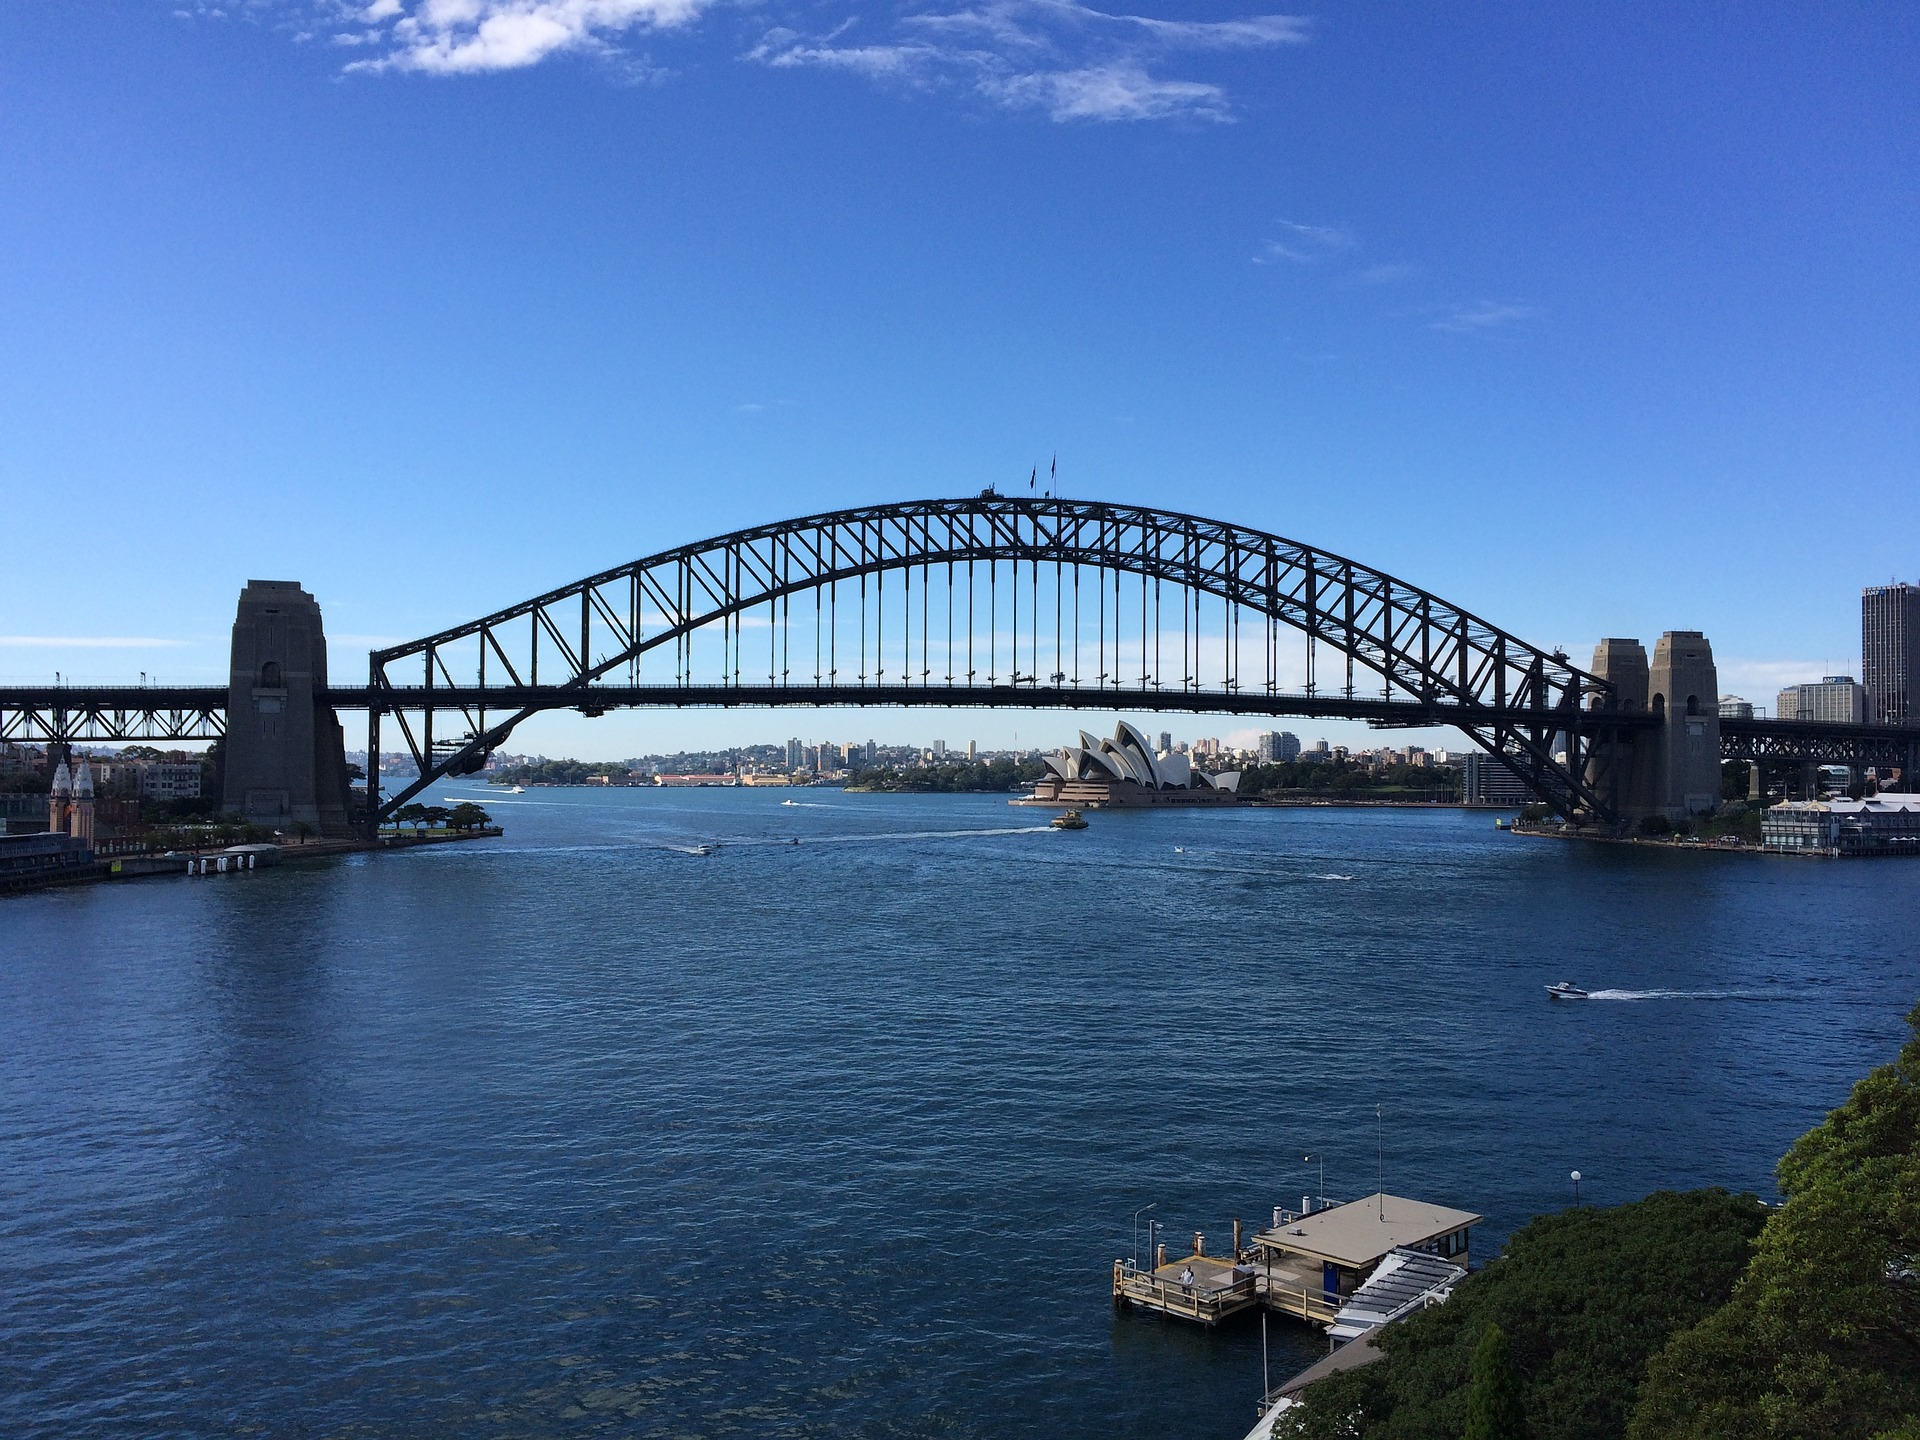 Sydney Harbour Bridge with Sydney Opera House in background, Australia